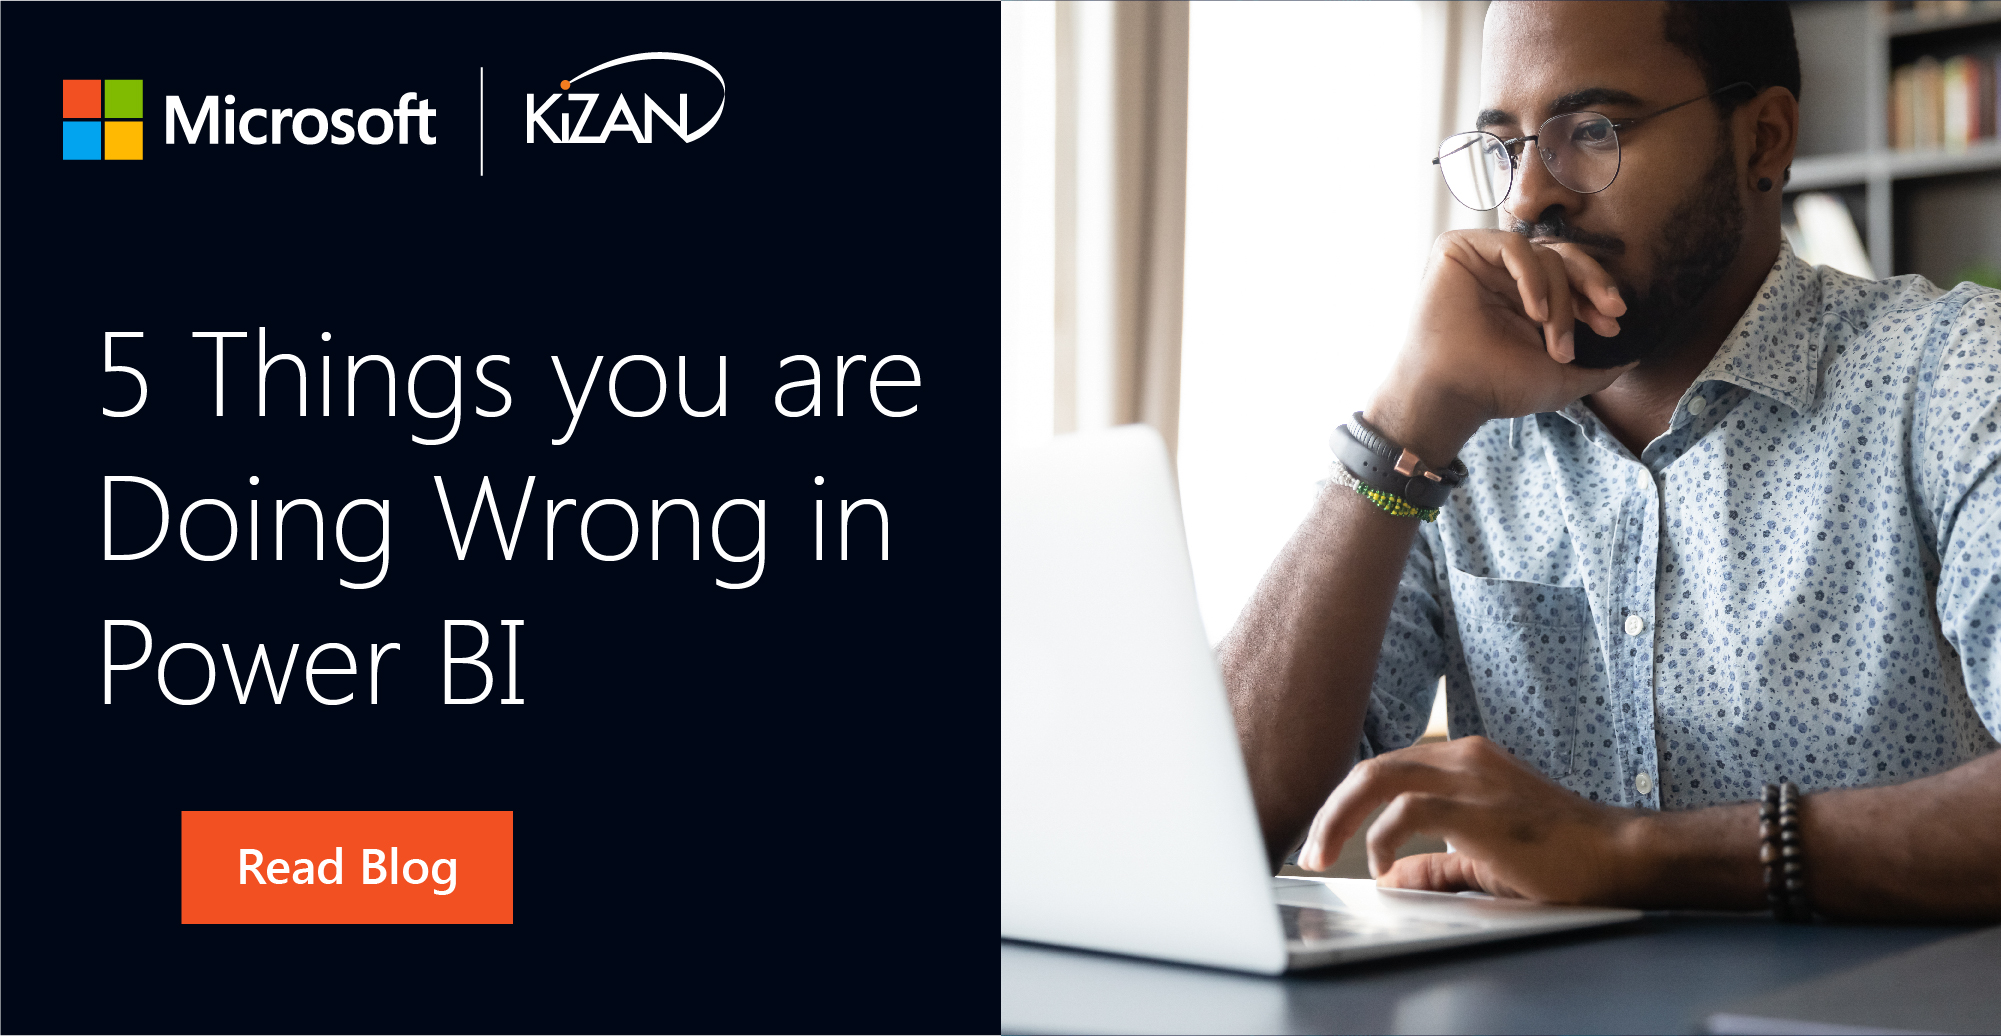 5 Things you are Doing Wrong in Power BI